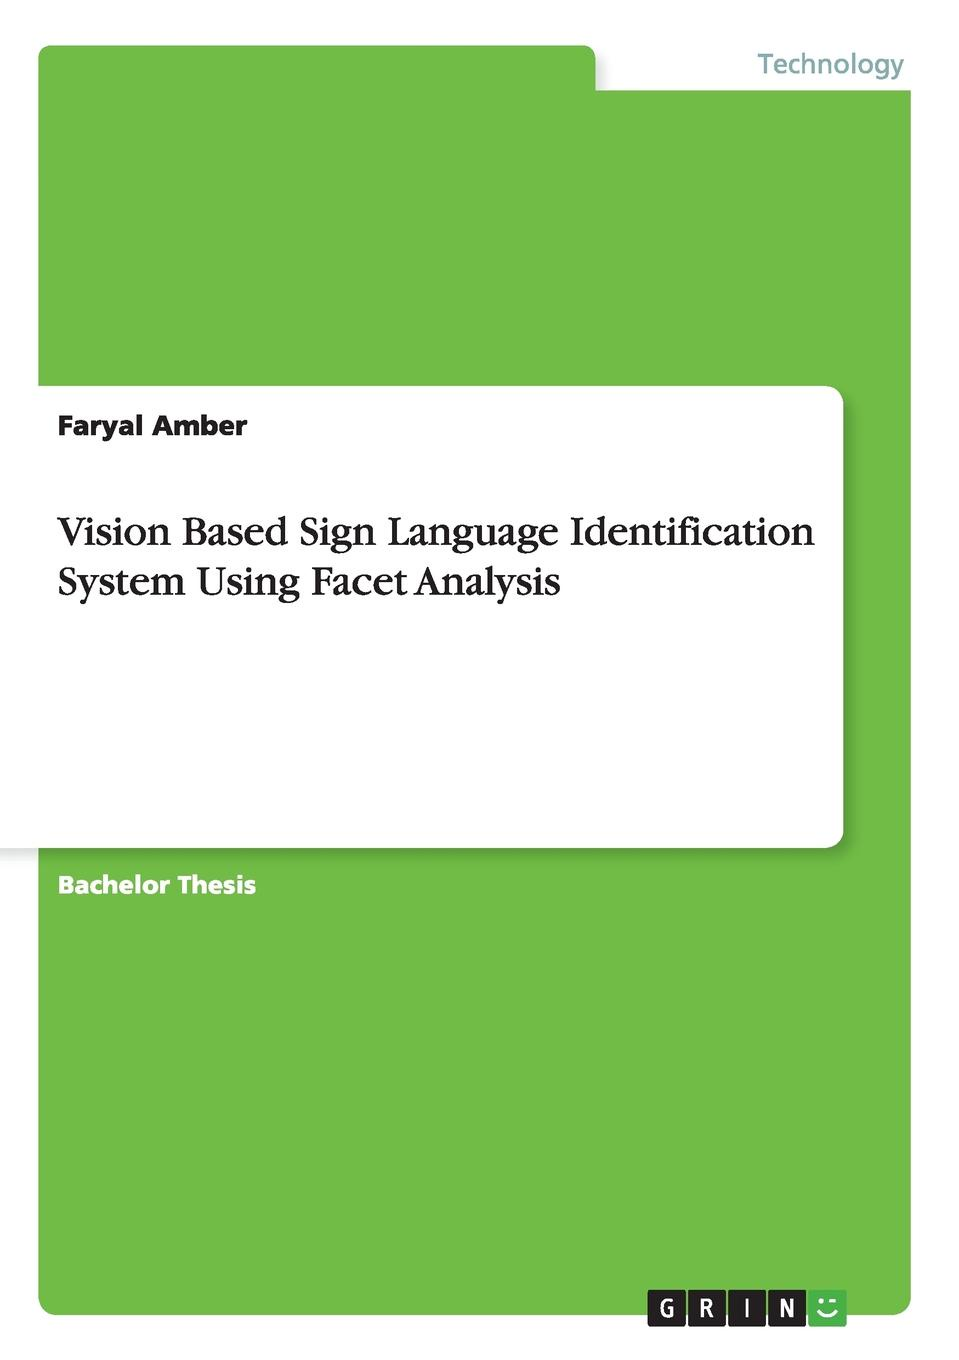 Faryal Amber Vision Based Sign Language Identification System Using Facet Analysis 4 3 inch motion detection peephole viewer ir night vision video door phone